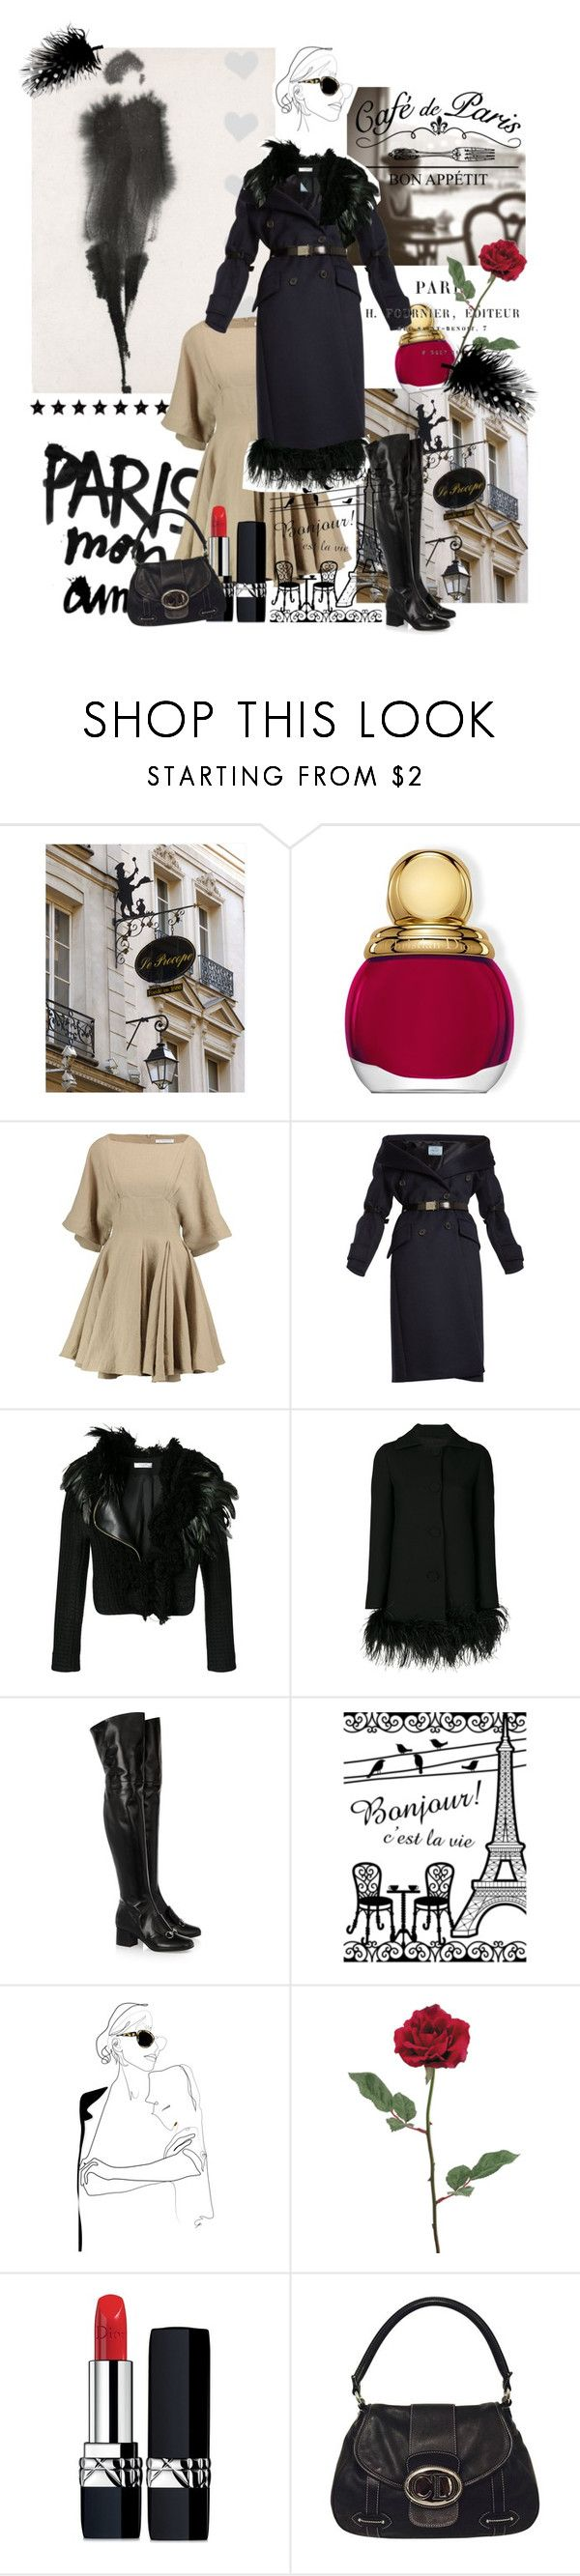 """""""January 22,2018"""" by anny951 ❤ liked on Polyvore featuring WALL, Christian Dior, J.W. Anderson, Prada, Lanvin, Boutique Moschino and Gucci"""